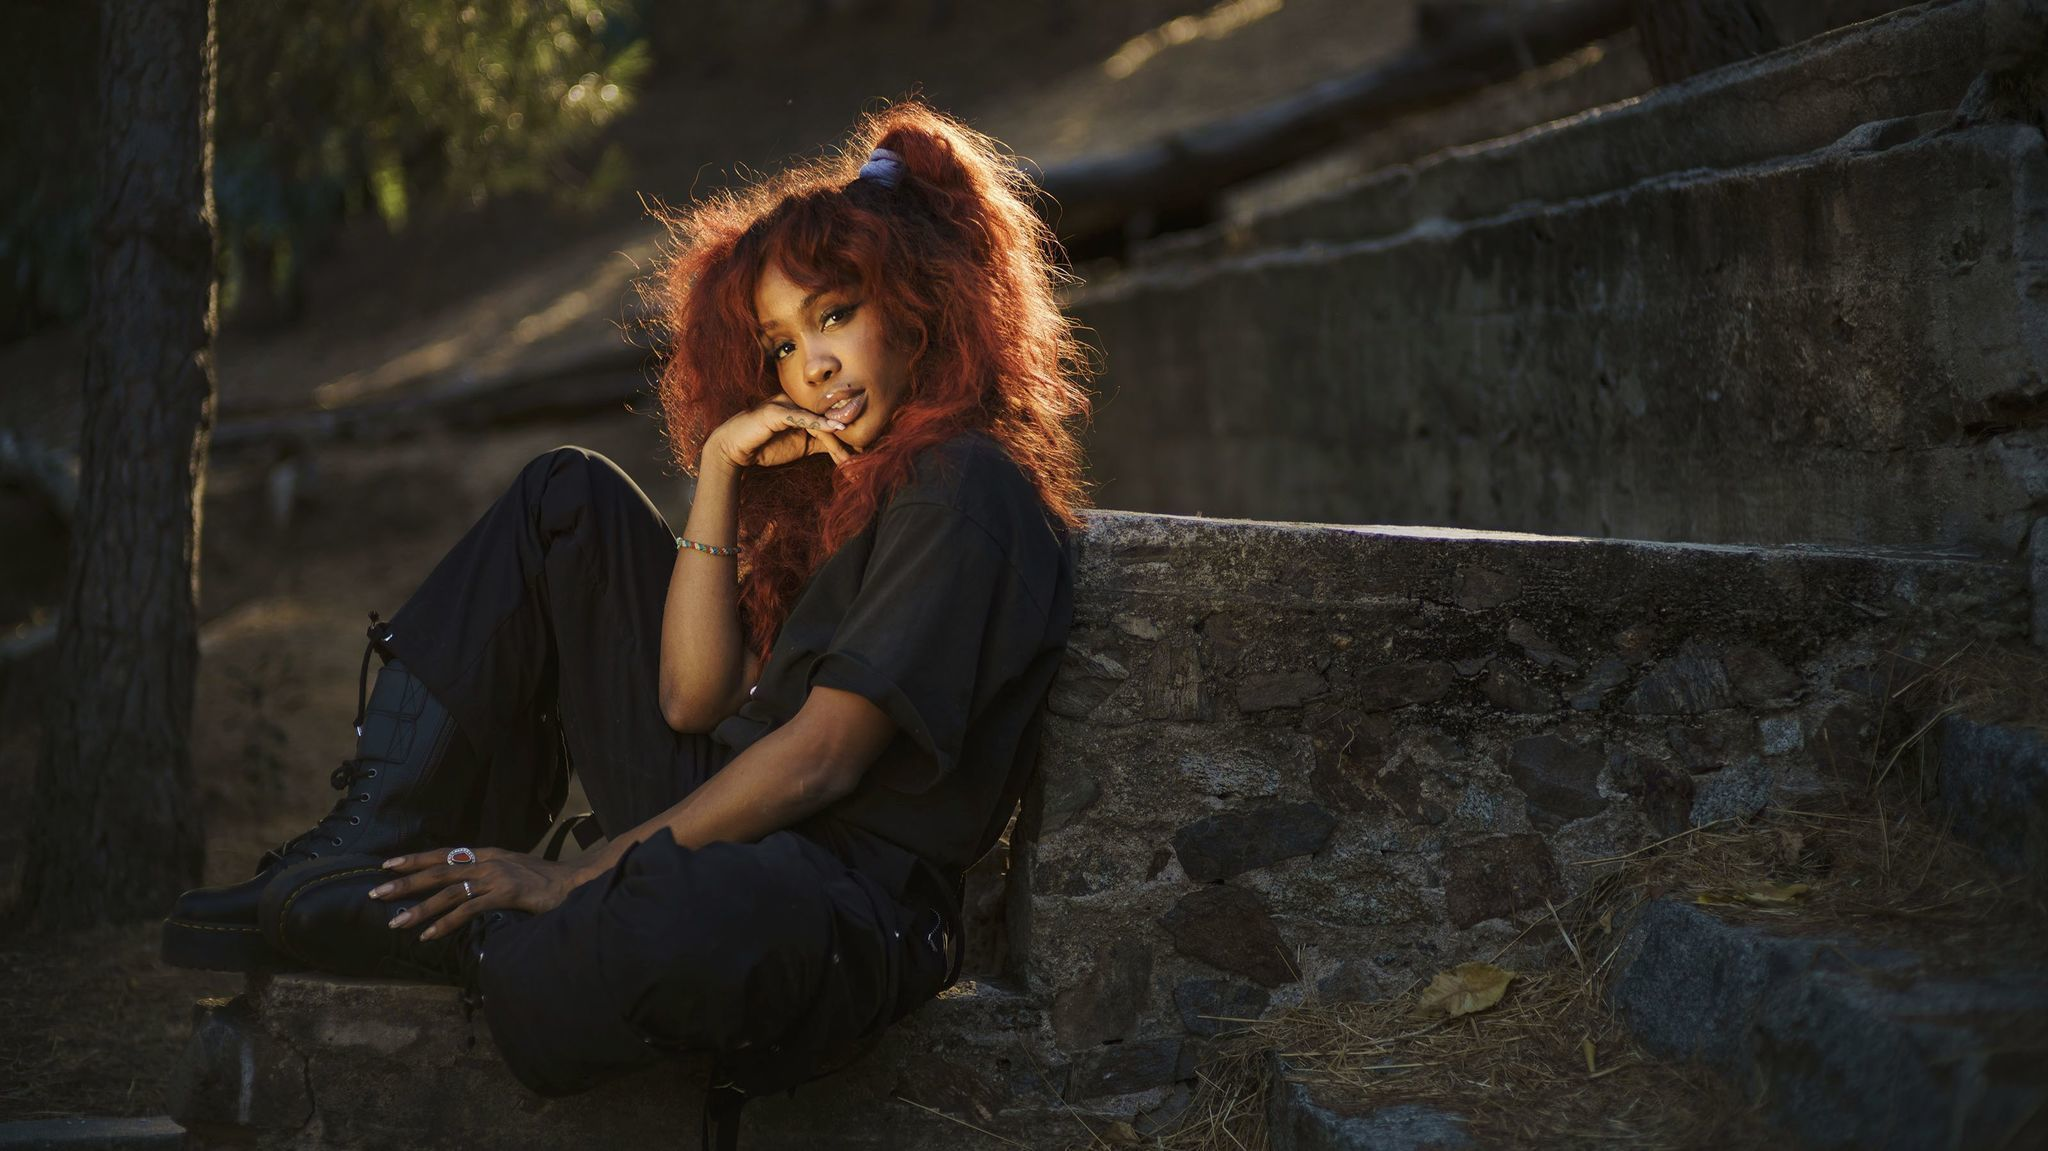 With 'Ctrl' Sza is in the midst of a breakout year